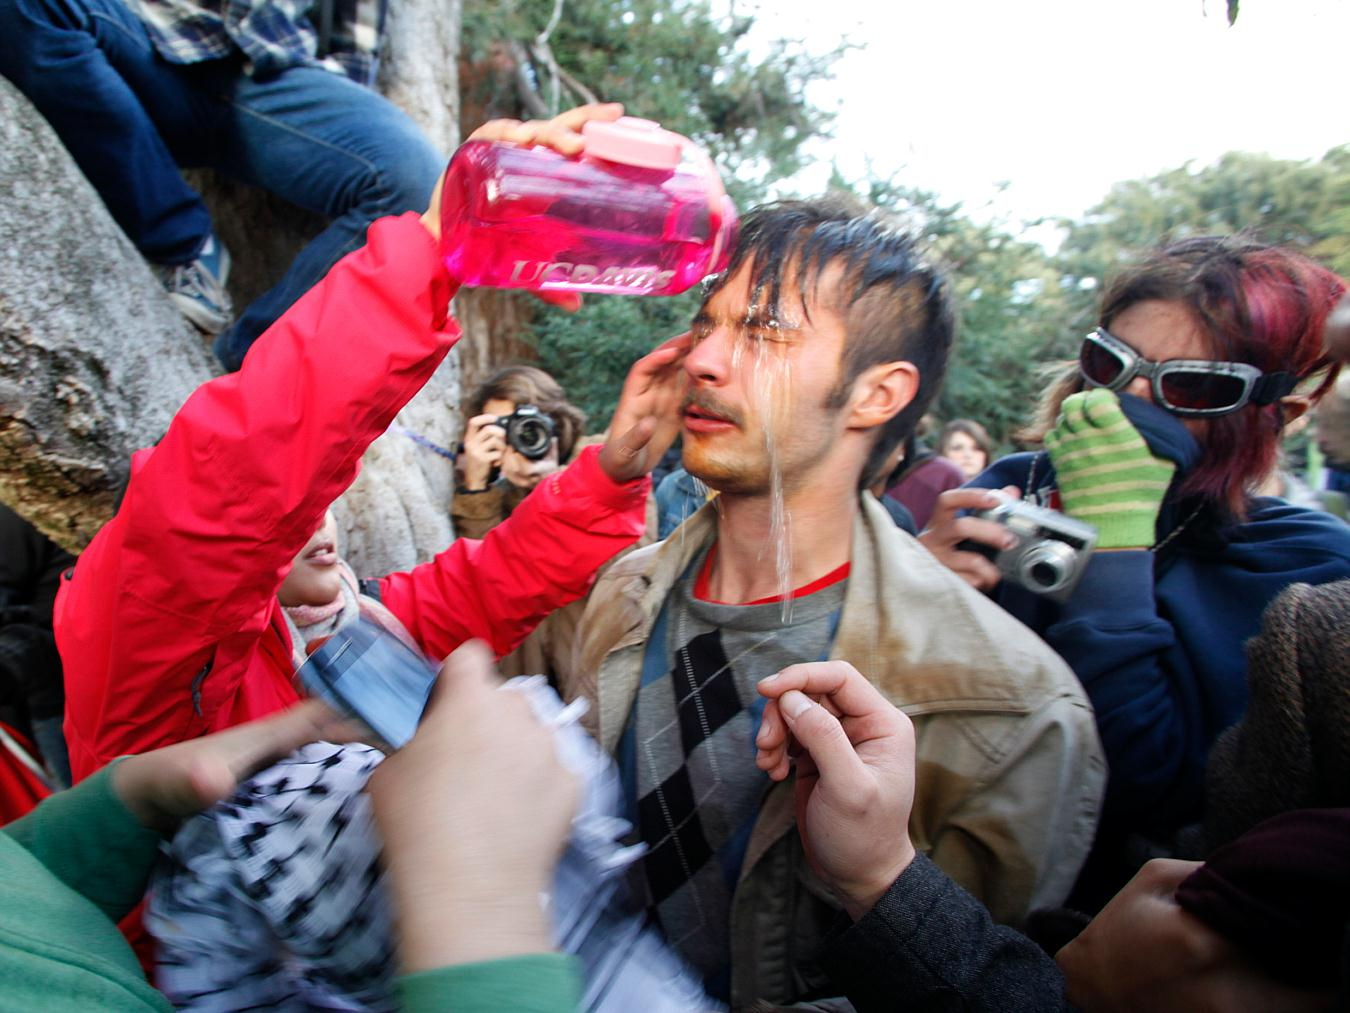 this Friday, Nov. 18, 2011, photo occupy protester David Buscho is helped after being pepper sprayed by campus police while blocking their exit from the school